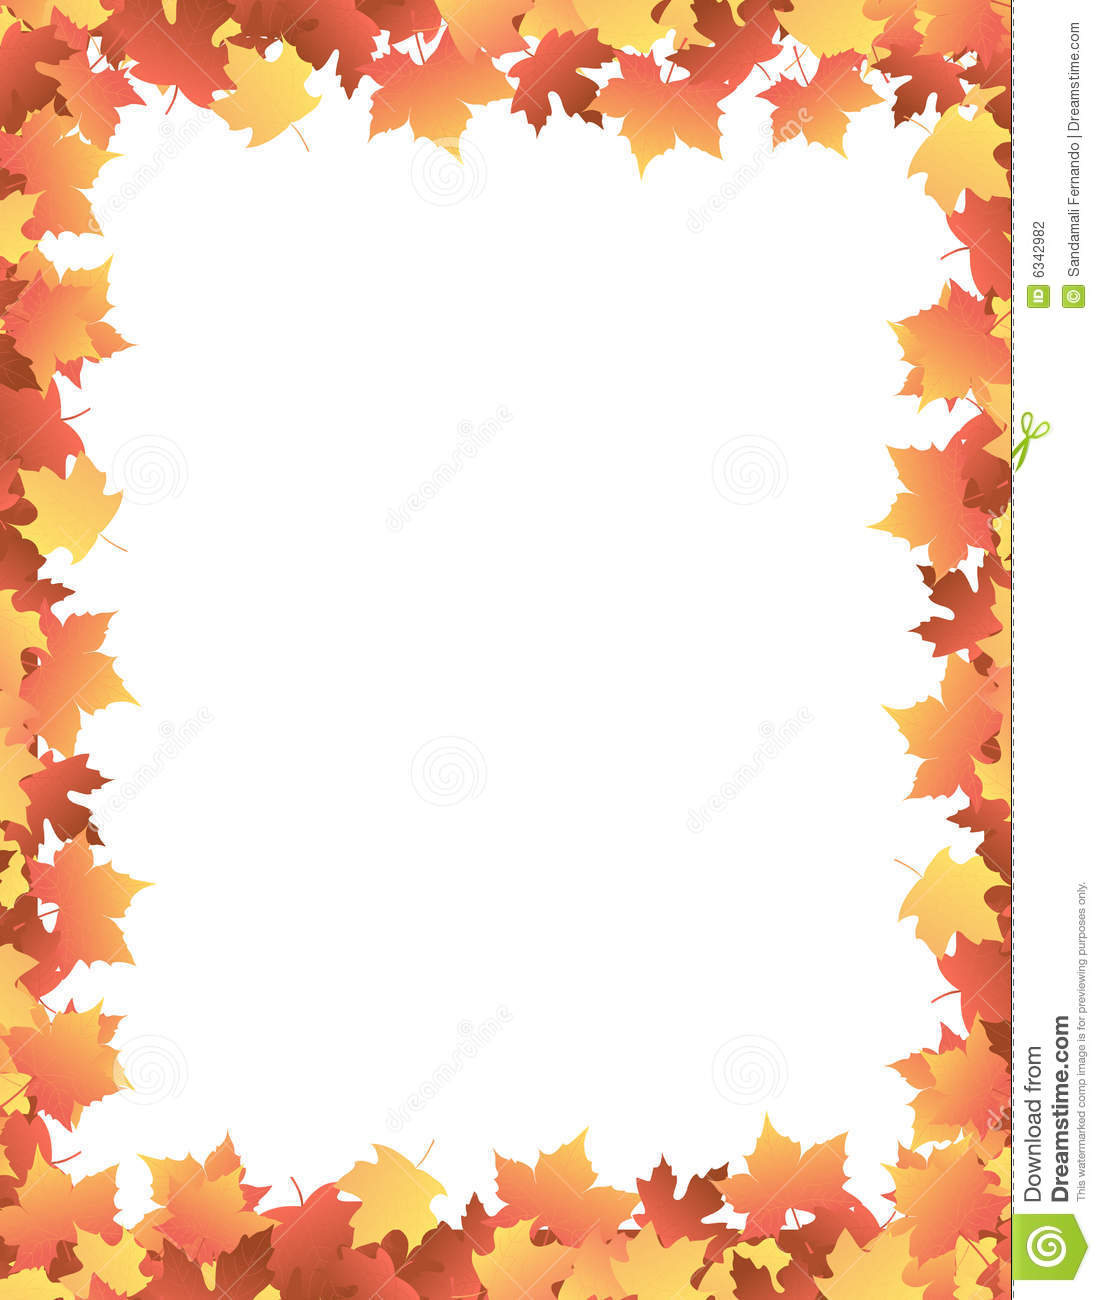 Fall Leaves Clip Art Border Recipe 101